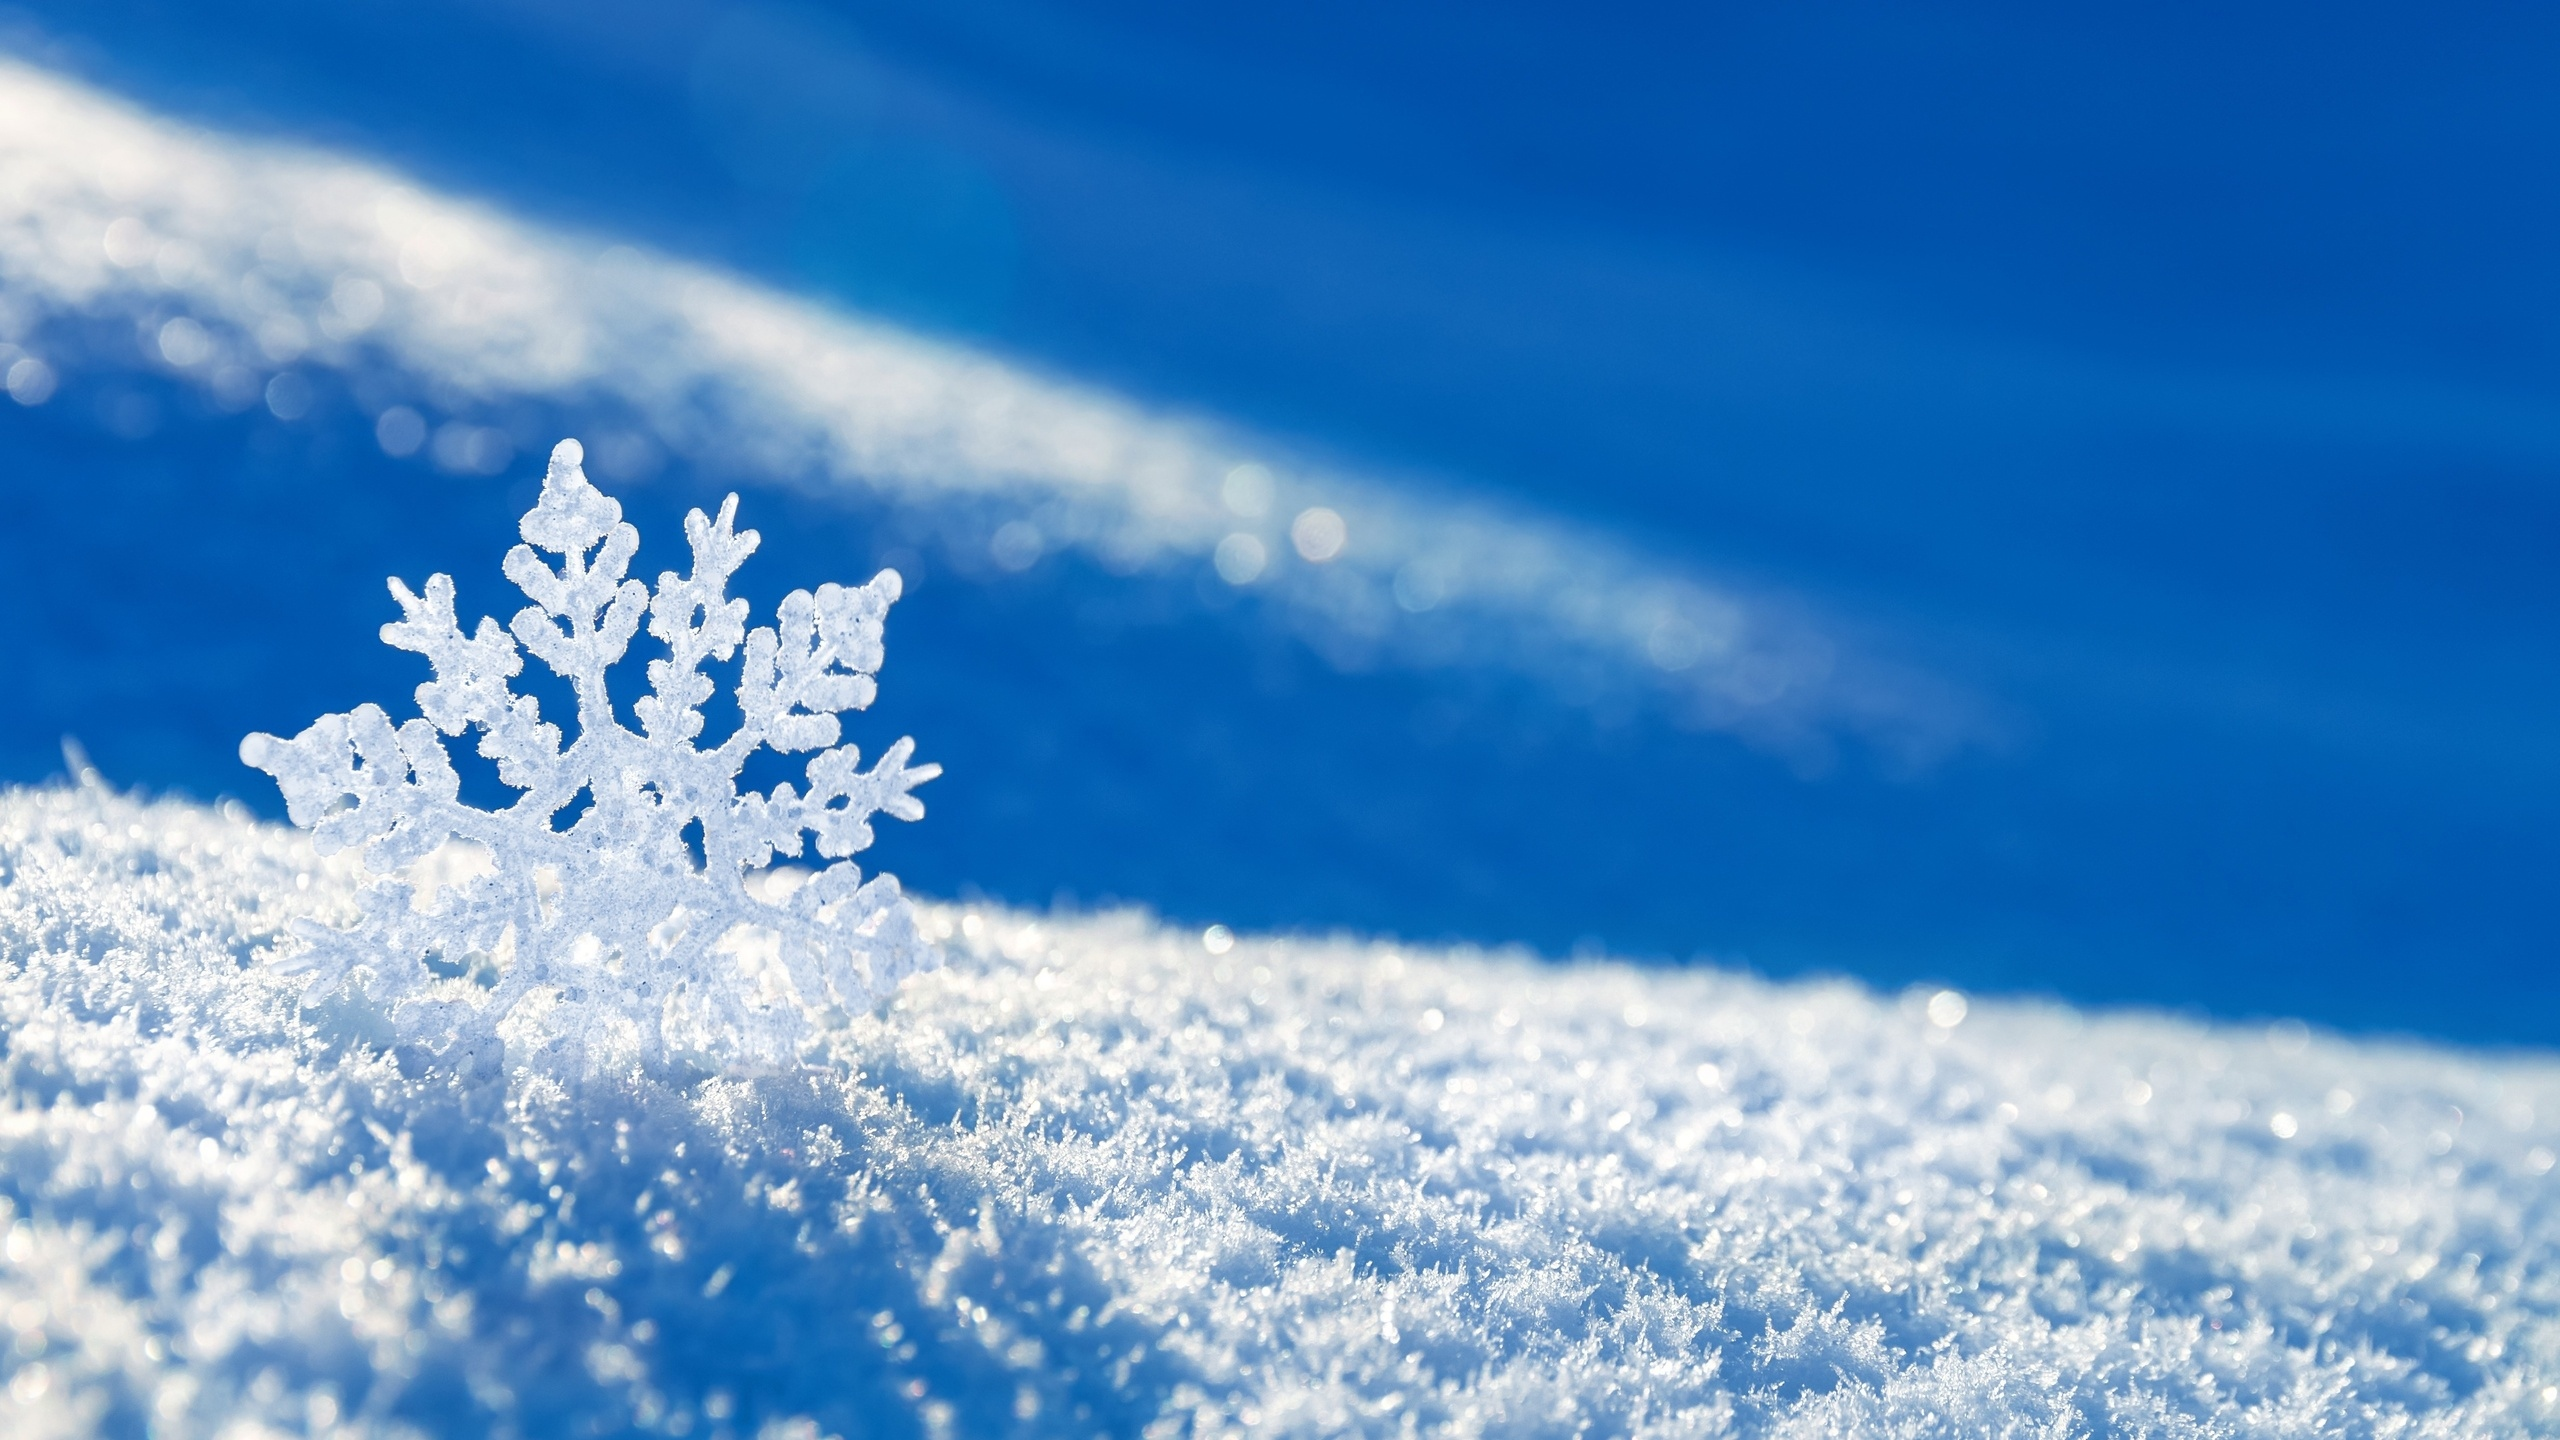 Download Wallpaper 2560x1440 Snow Snowflake Winter Mac iMac 27 HD 2560x1440